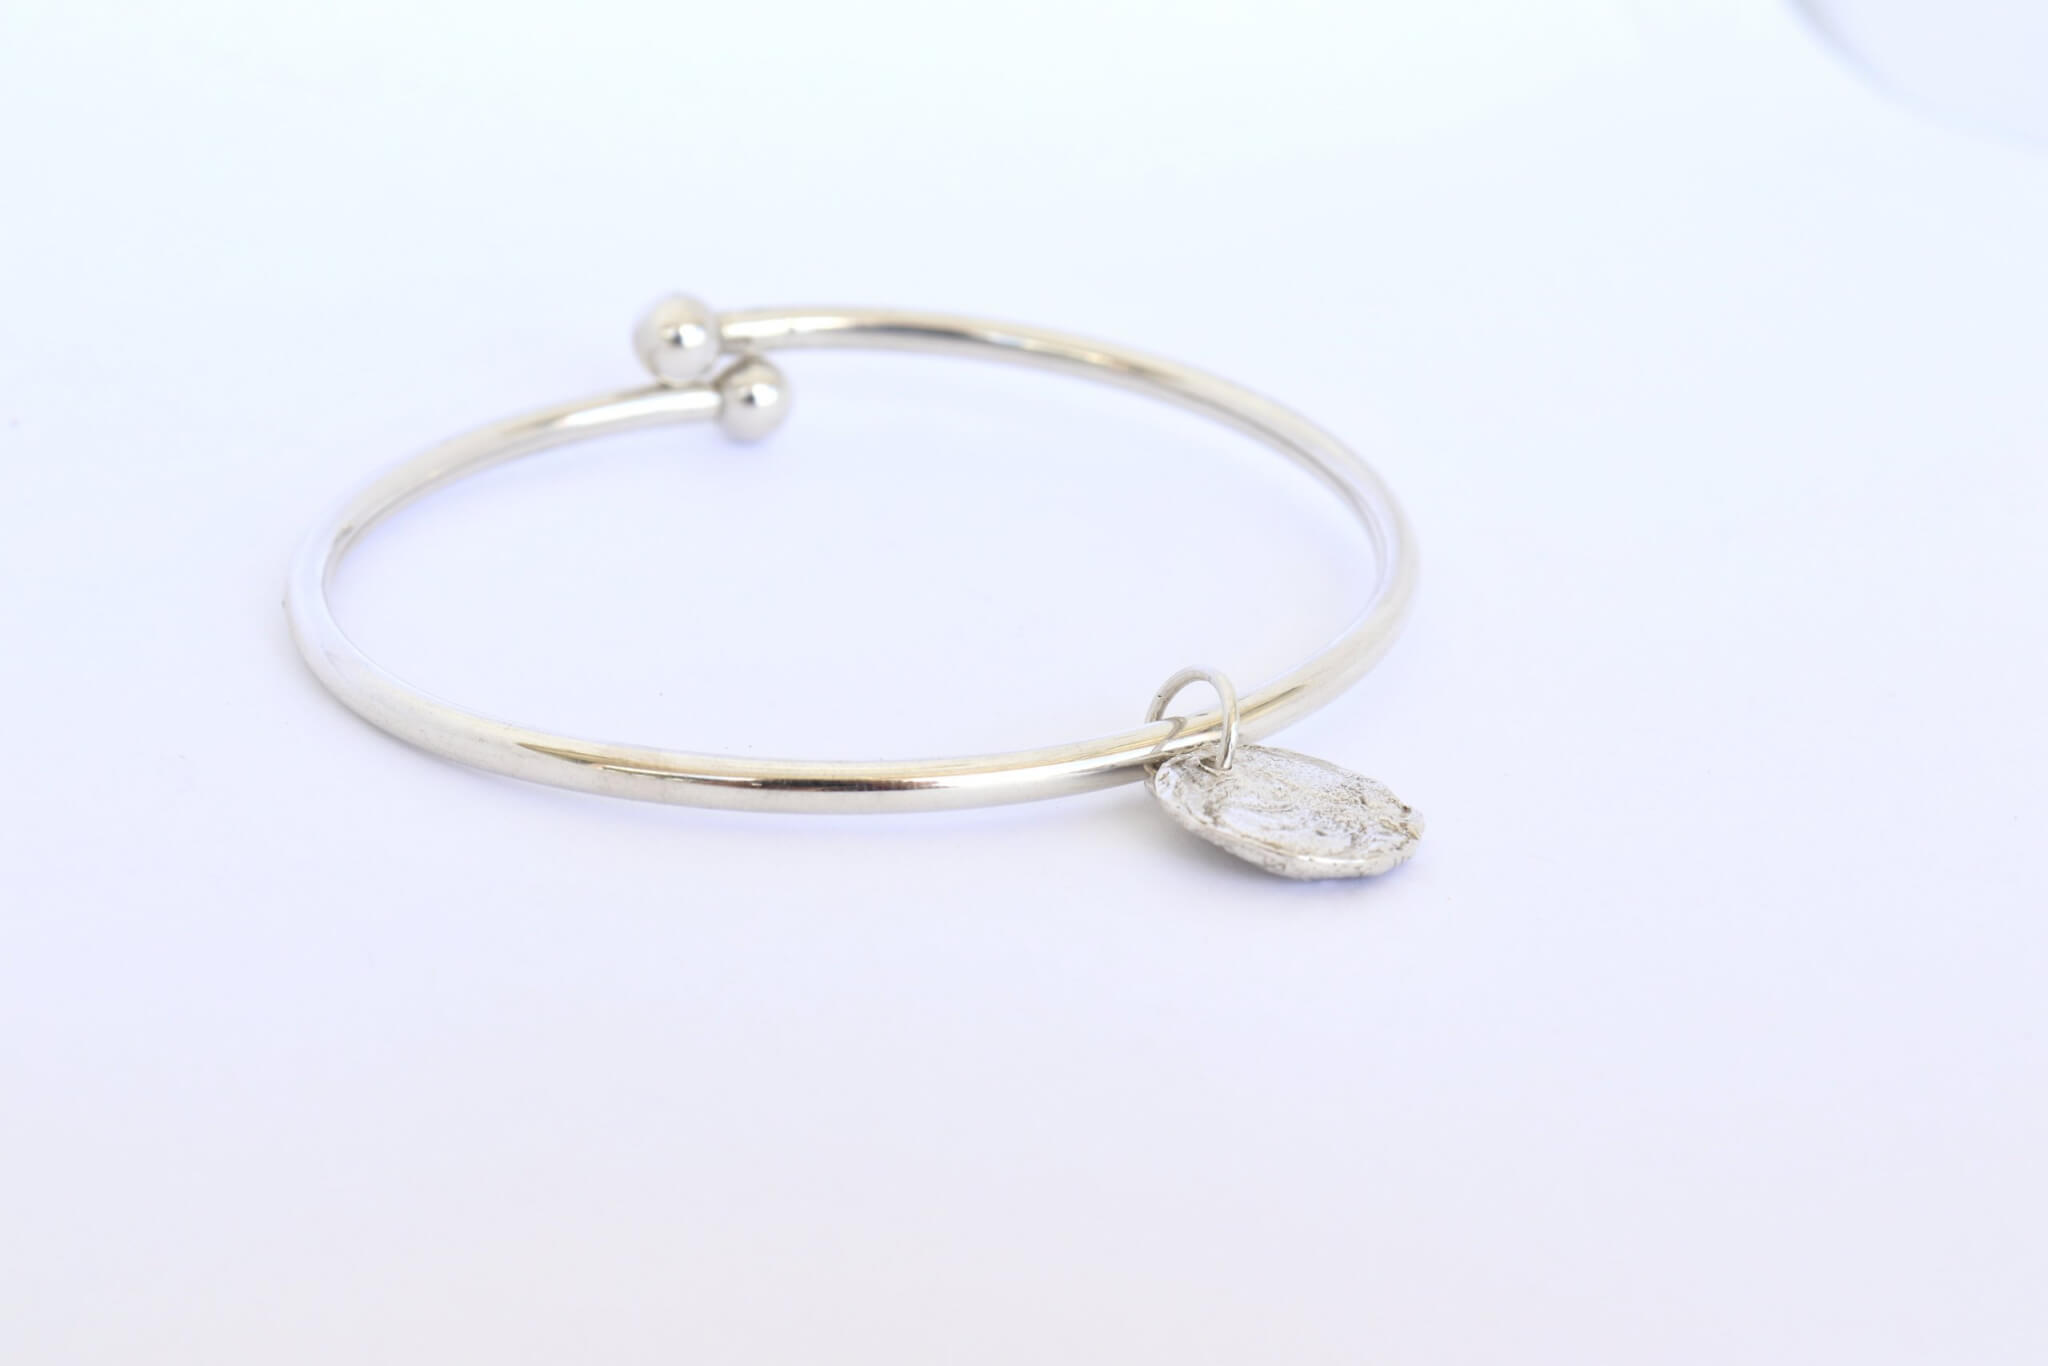 Keepsake-charm-with-bangle